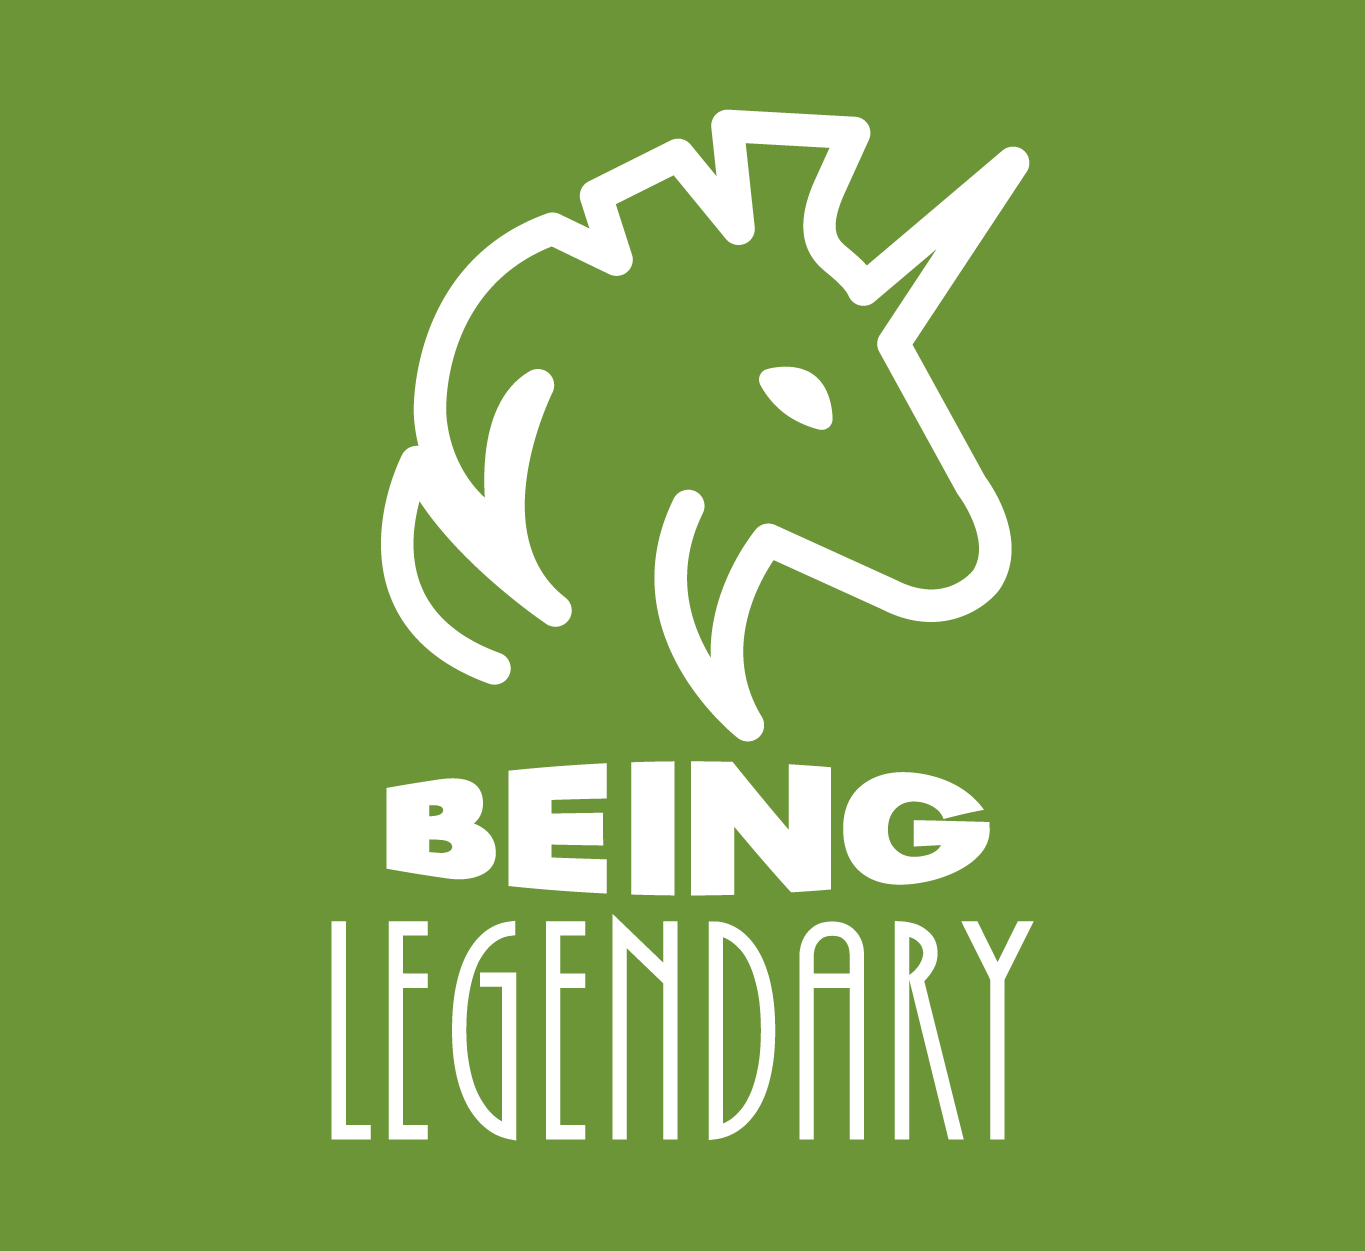 A green square with a white unicorn that says: Being Legendary.